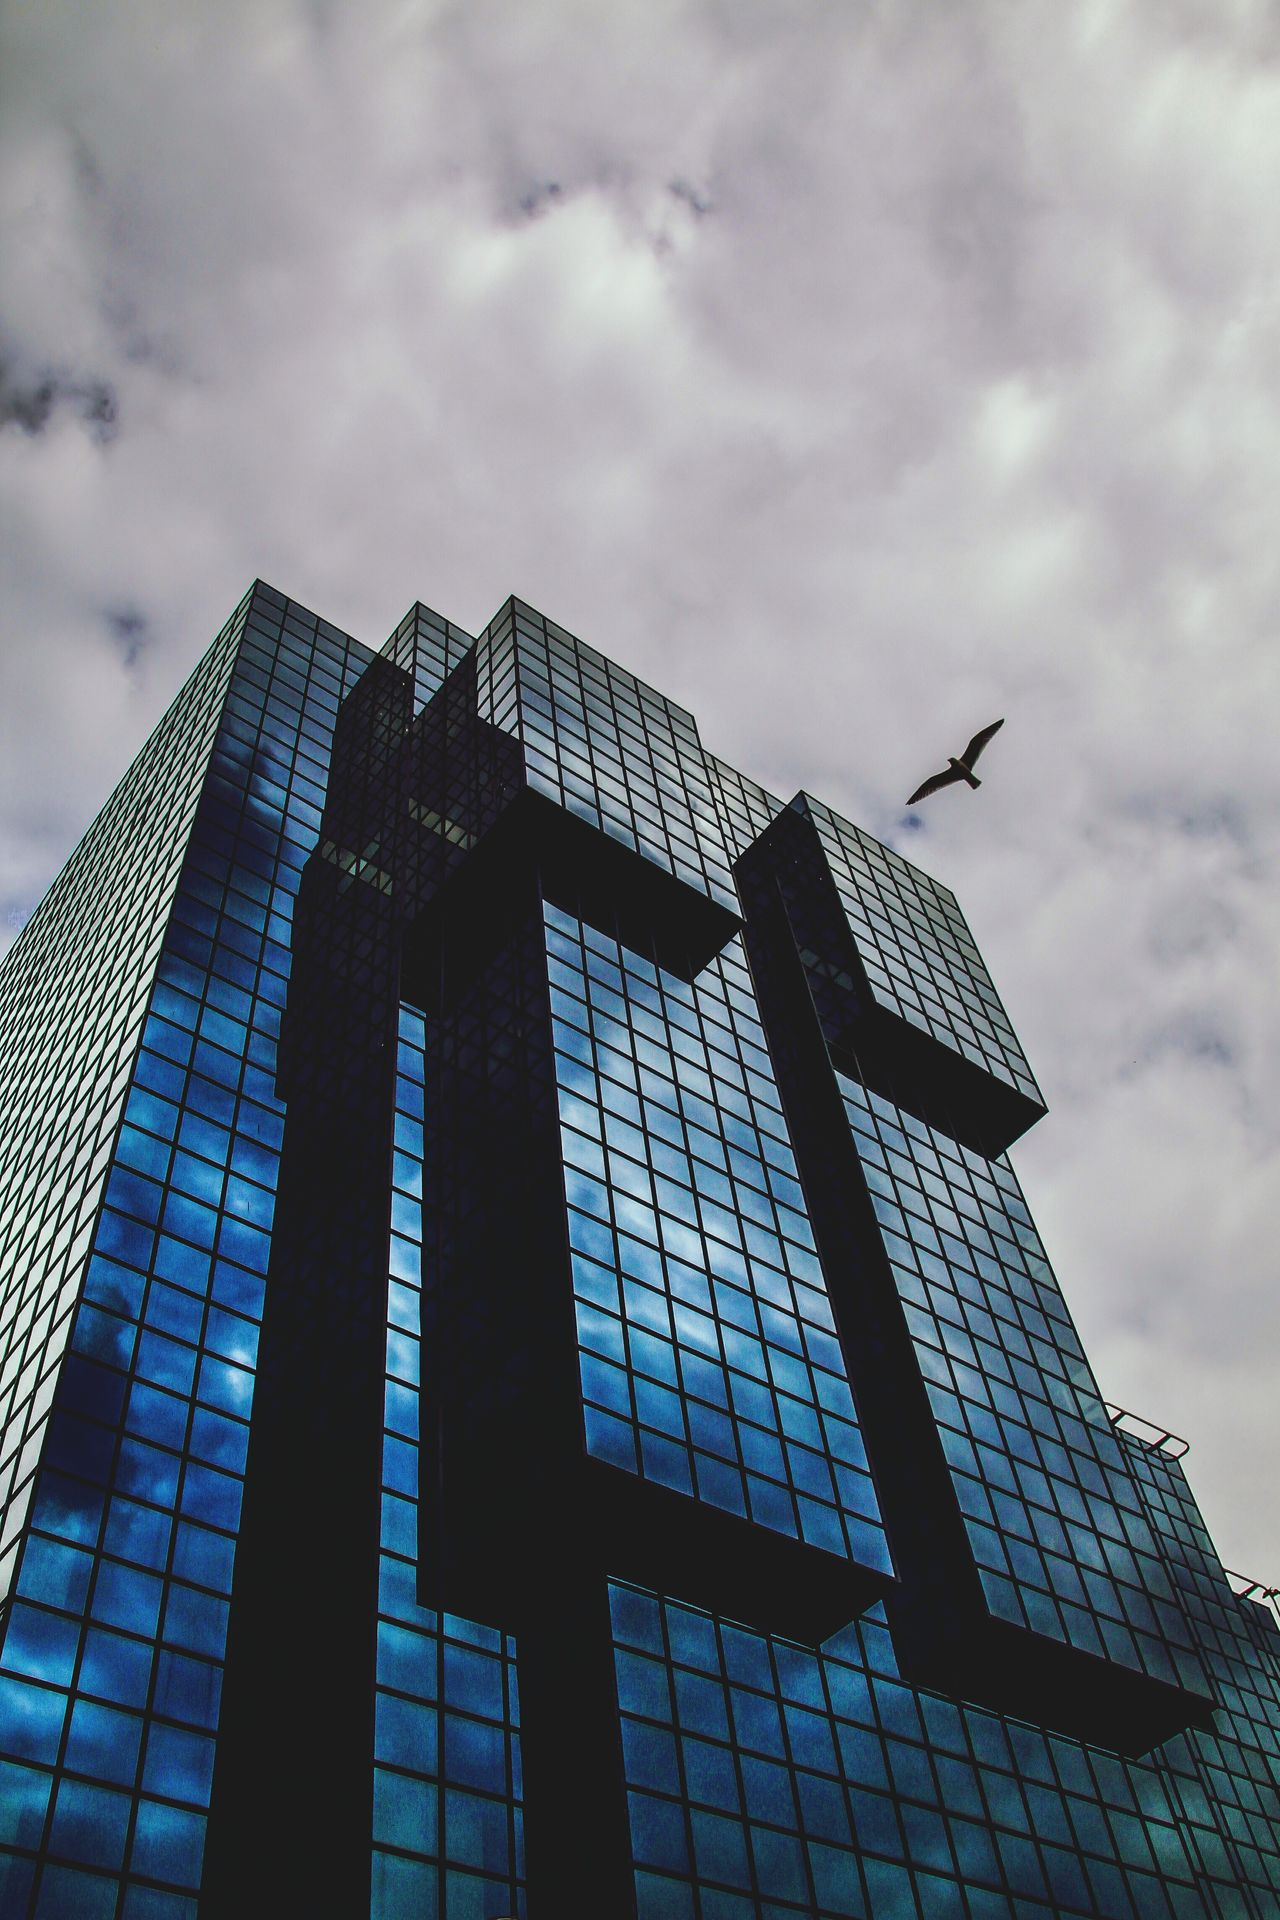 Architecture London Low Angle View Sky Building Exterior Cloud - Sky Business Finance And Industry No People Outdoors Day Skyscraper Modern The Street Photographer - 2017 EyeEm Awards Neighborhood Map Travel Destinations Travel The Architect - 2017 EyeEm Awards Mirror Reflection EyeEm Gallery Cloudy Sky Check This Out Building Reflections Architecture Seagull Seagulls In Flight BYOPaper!